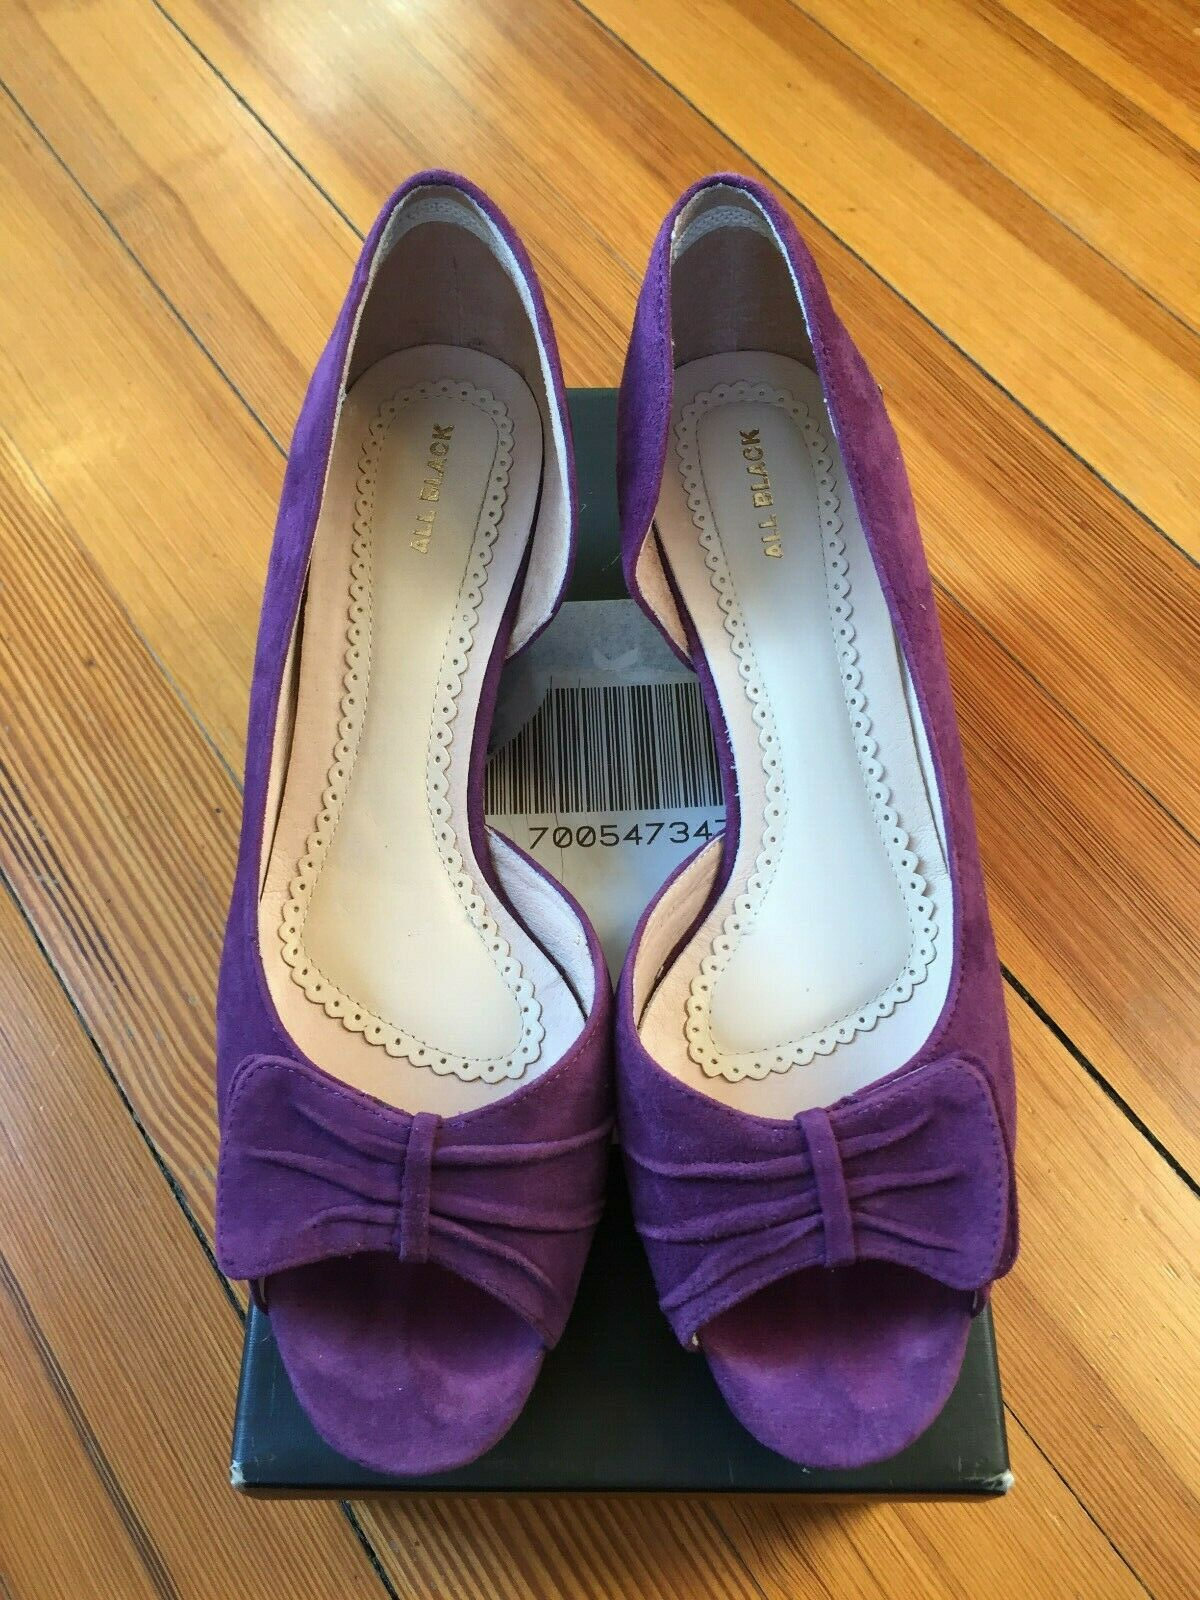 All Black - Urban Chic Purple Suede Wedge - Excellent Condition!